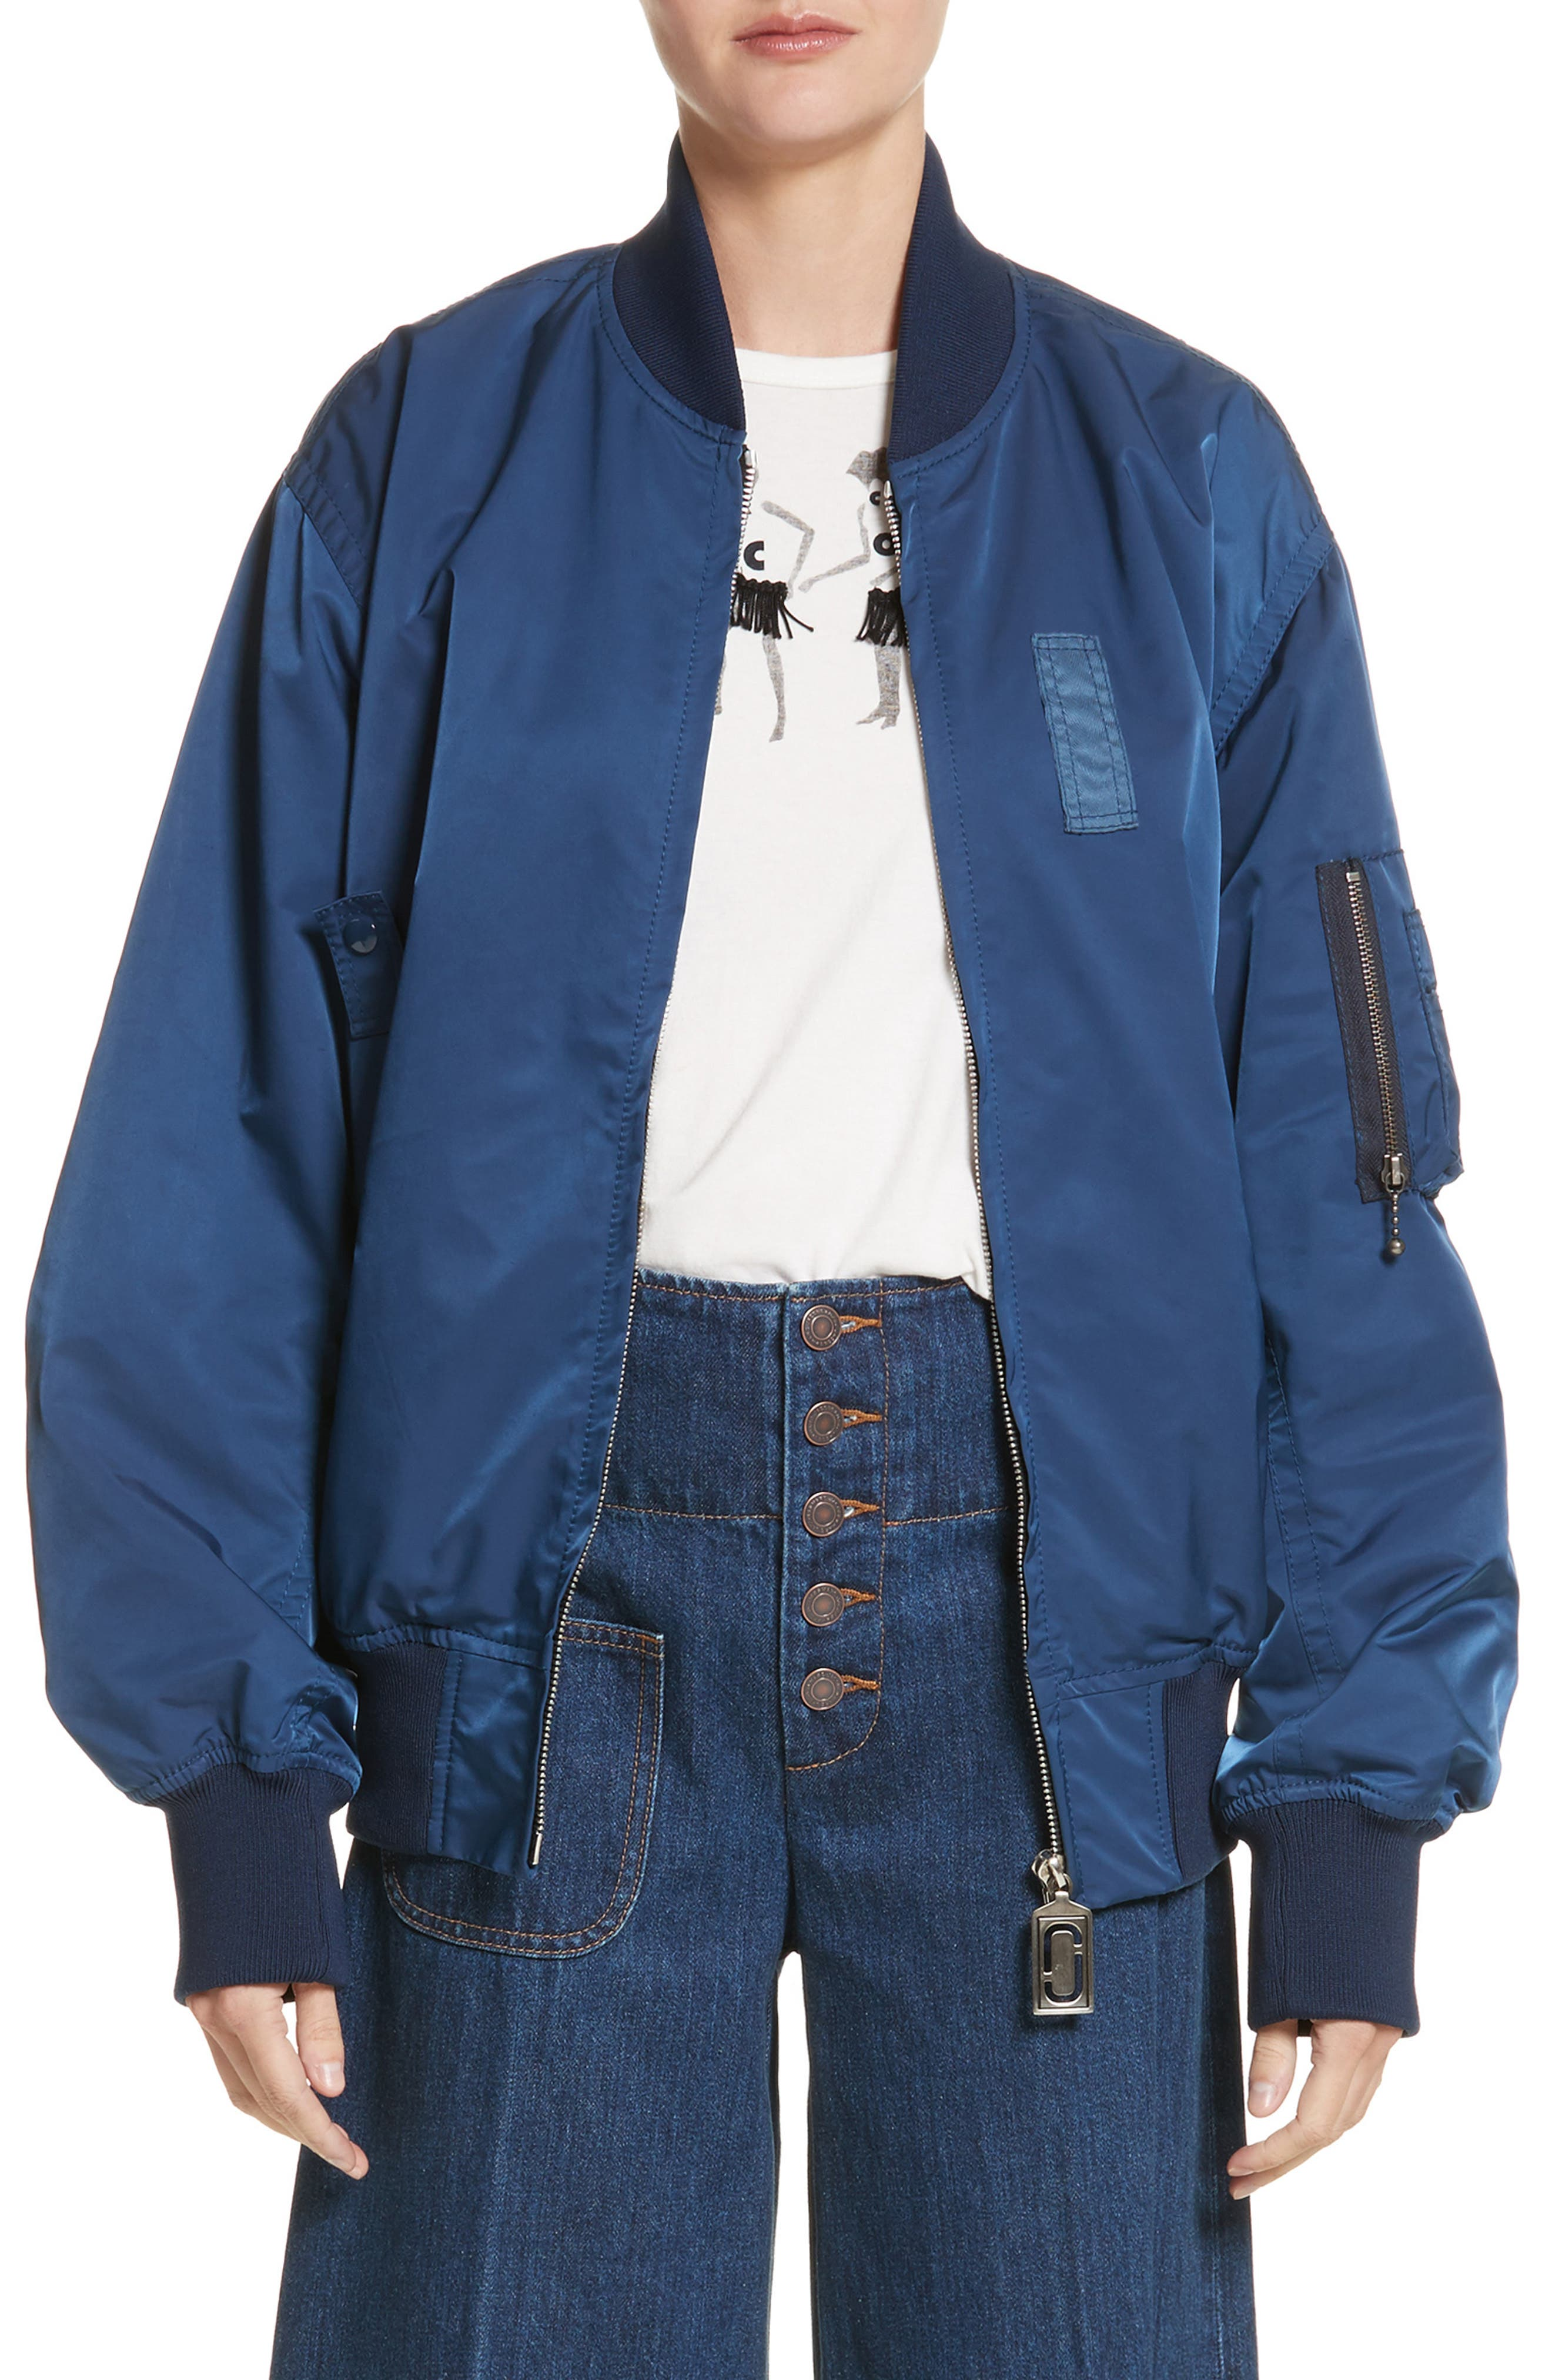 Alternate Image 1 Selected - MARC JACOBS Oversize Bomber